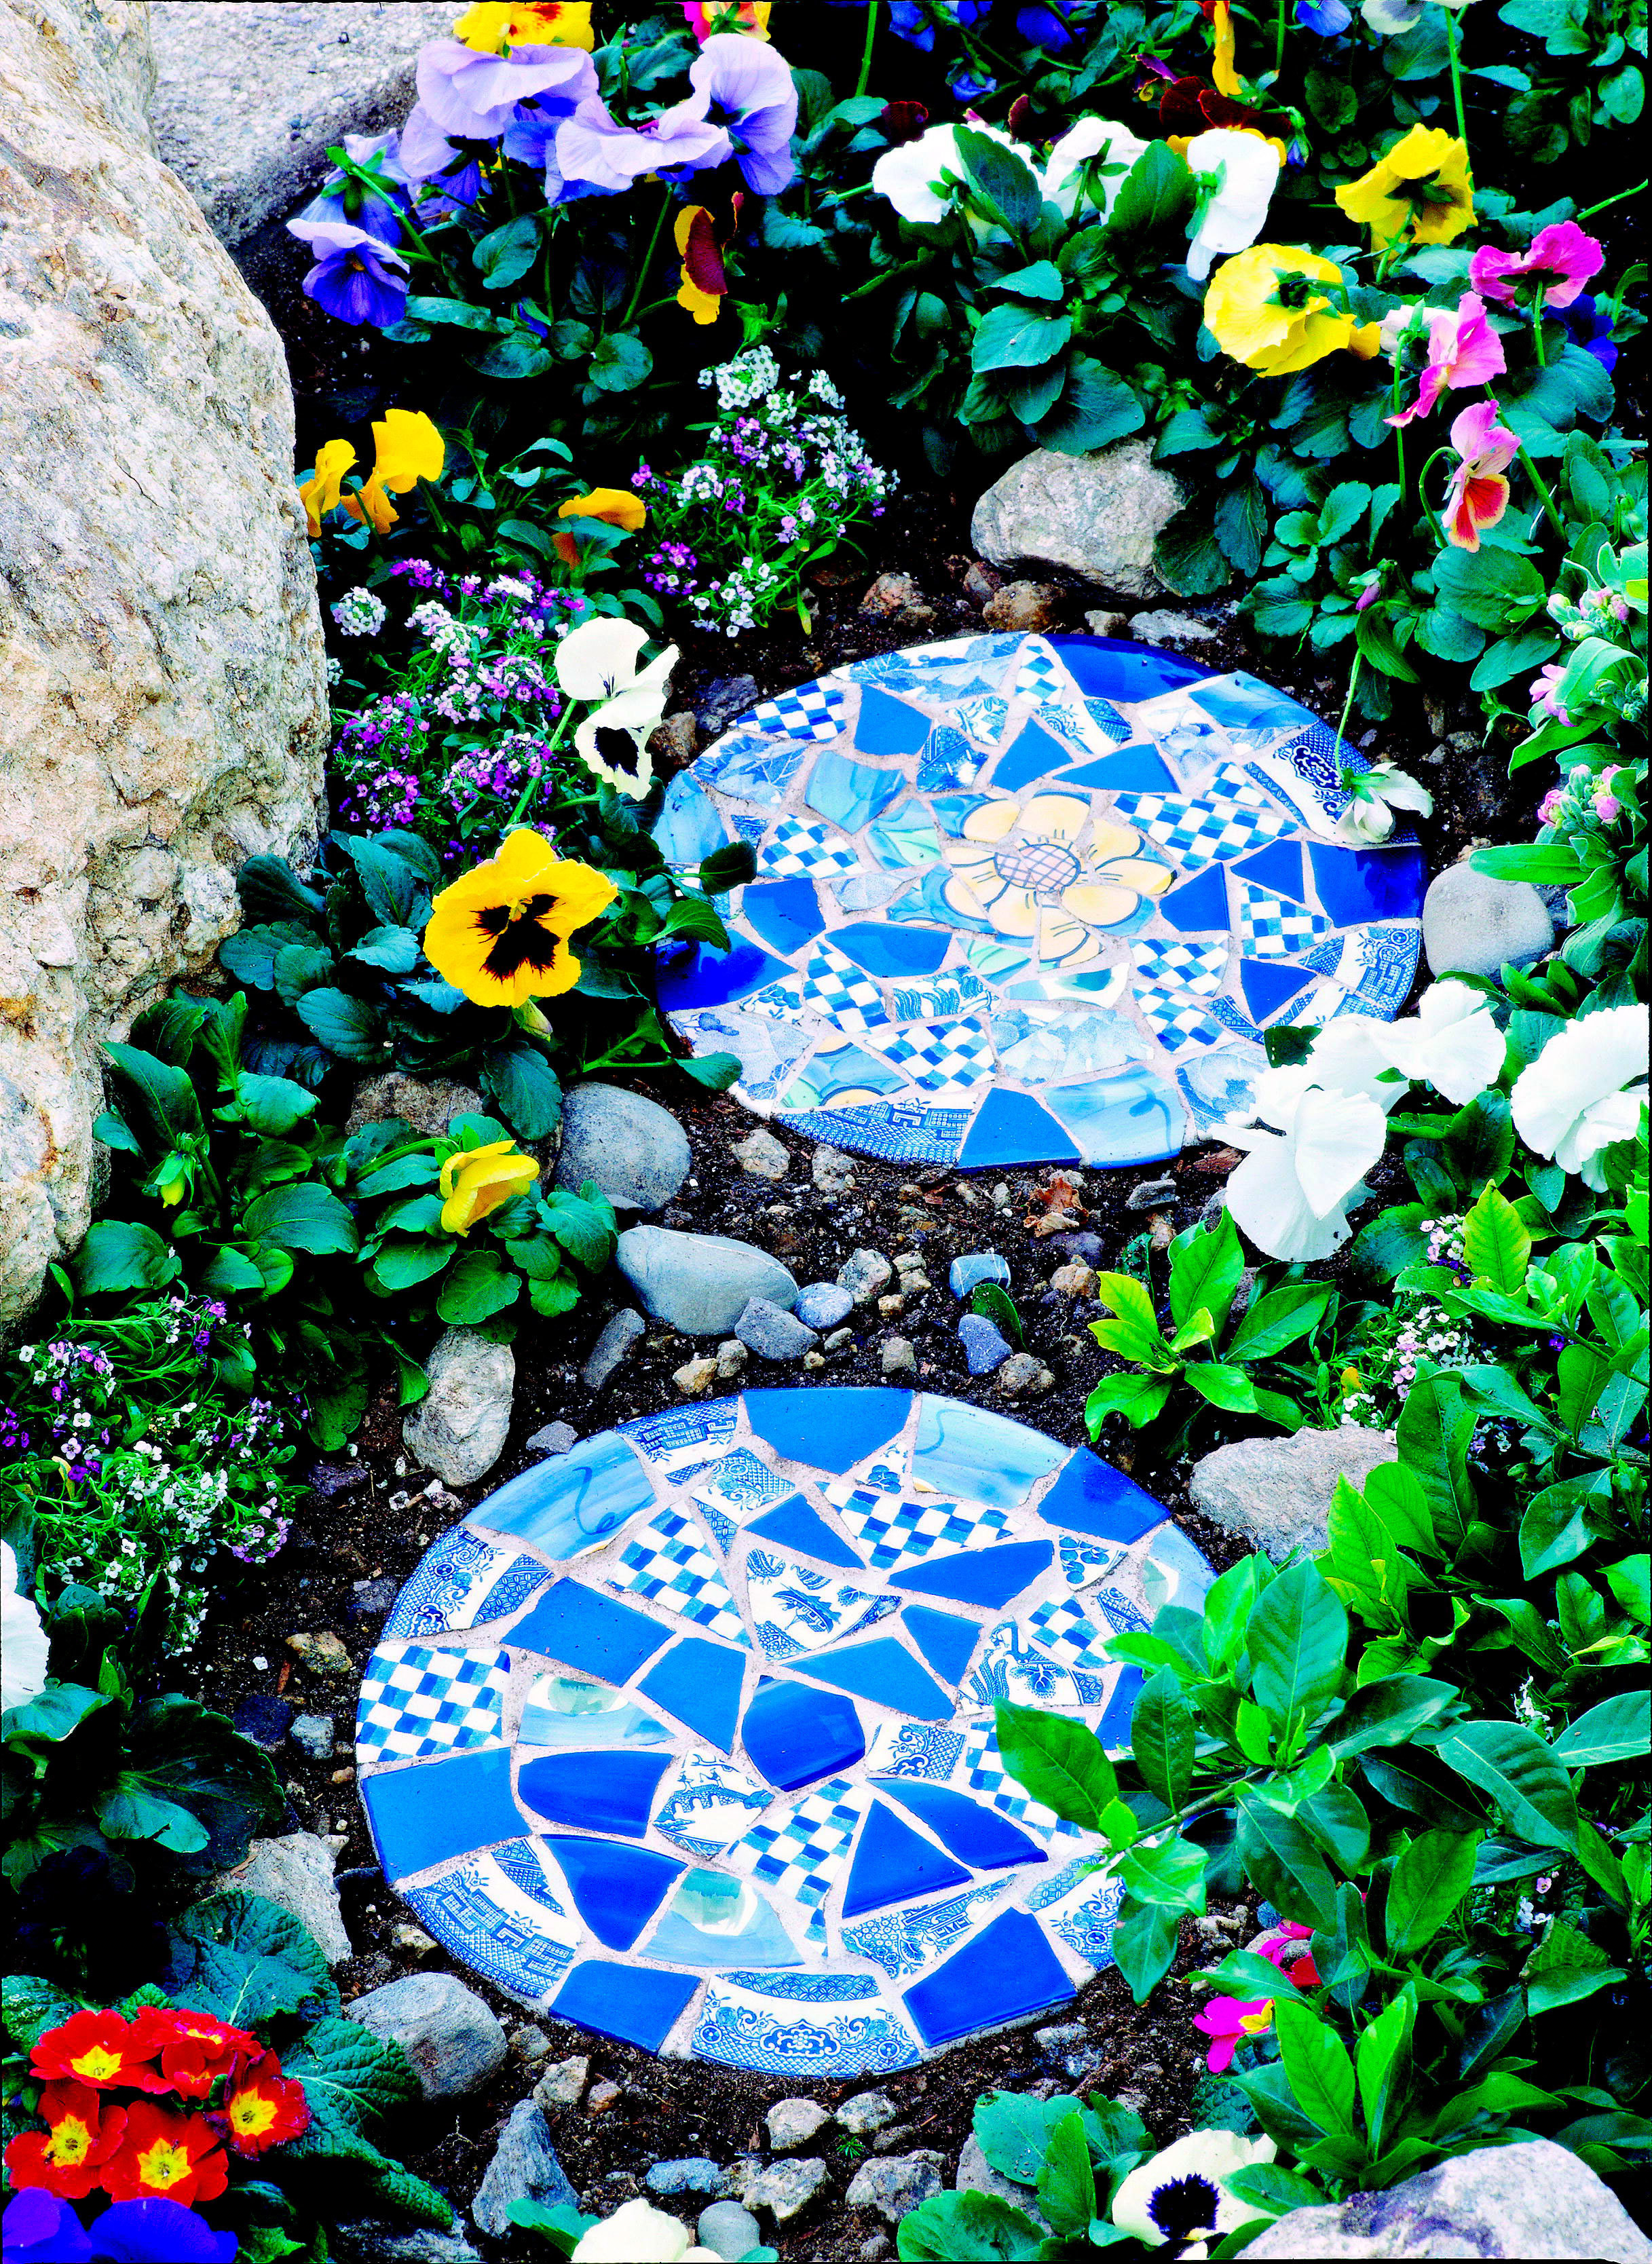 Break old dishes creative summer garden projects to for Garden mosaics designs